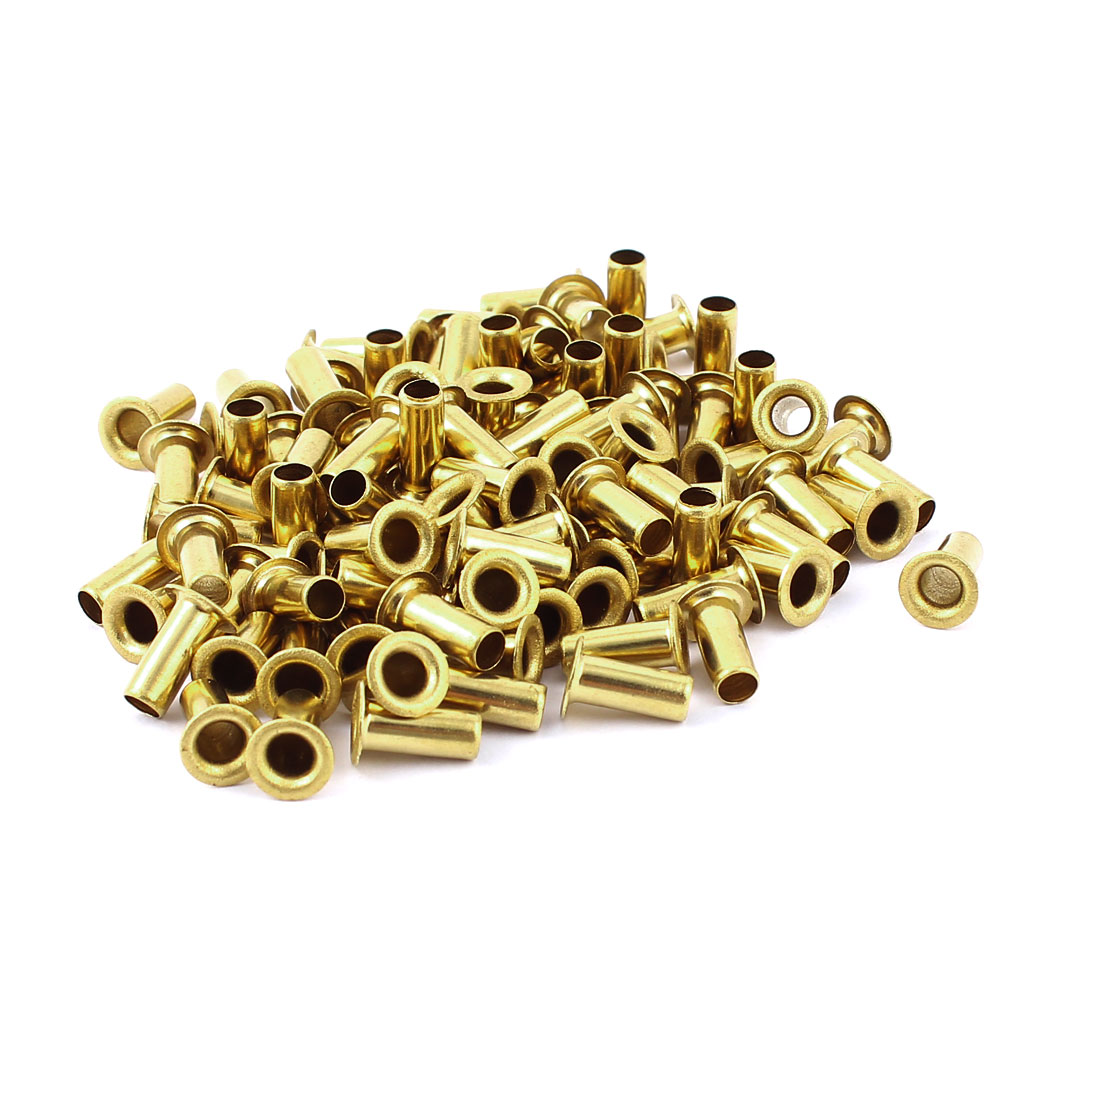 100pcs M5x12 Copper Via Vias Plated Through Hole Rivets Hollow Grommets PCB Circuit Board